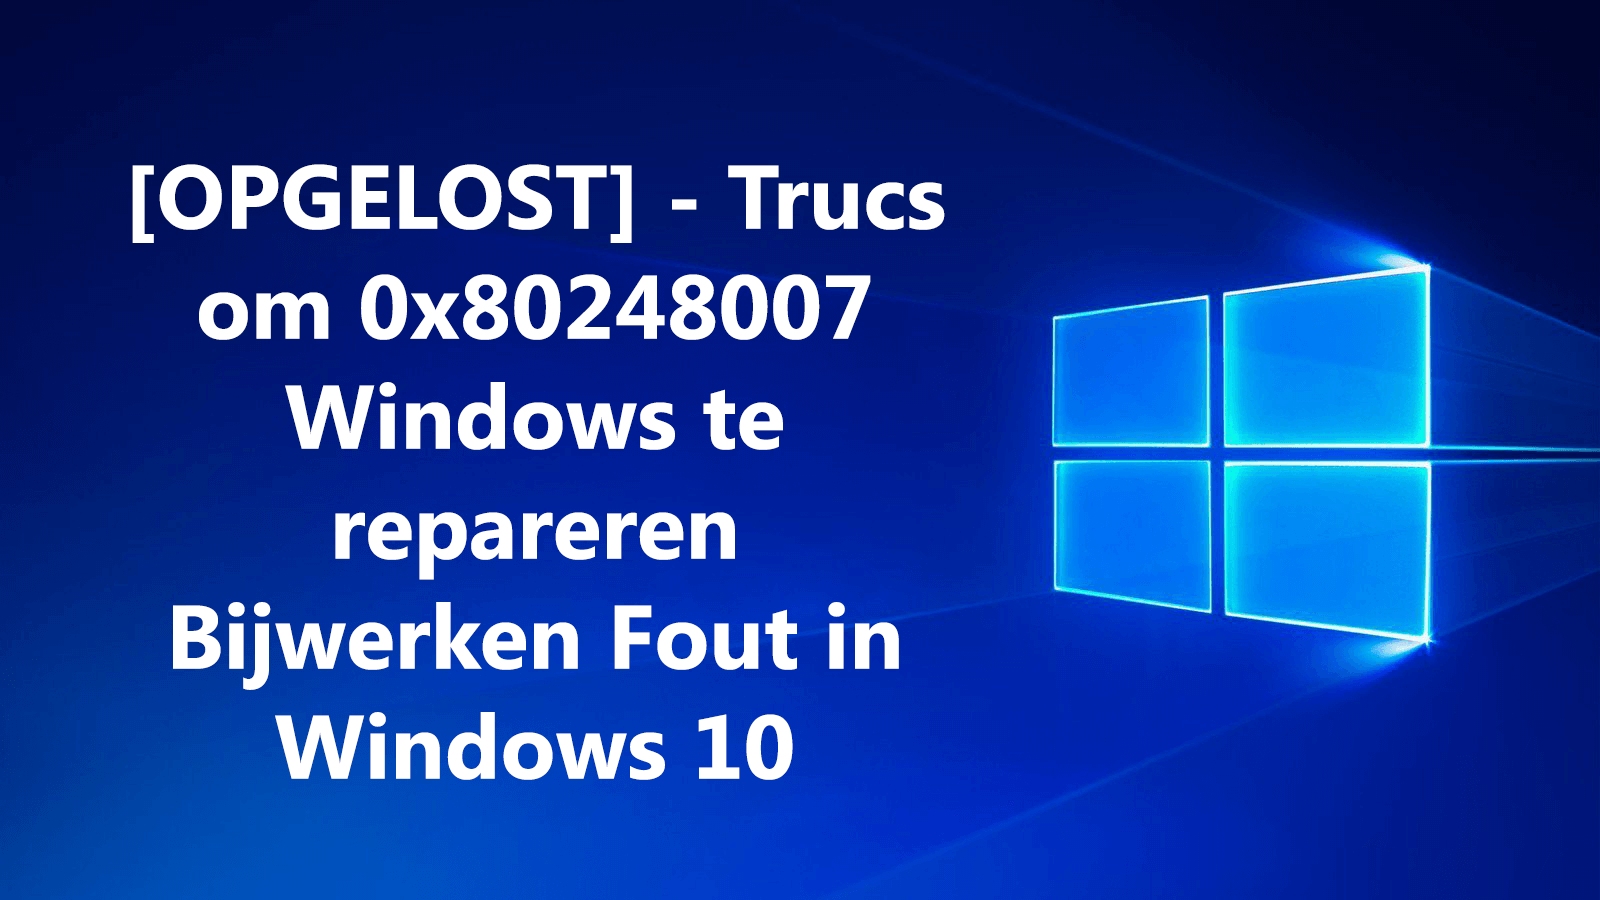 fout 0x80248007 in Windows 10